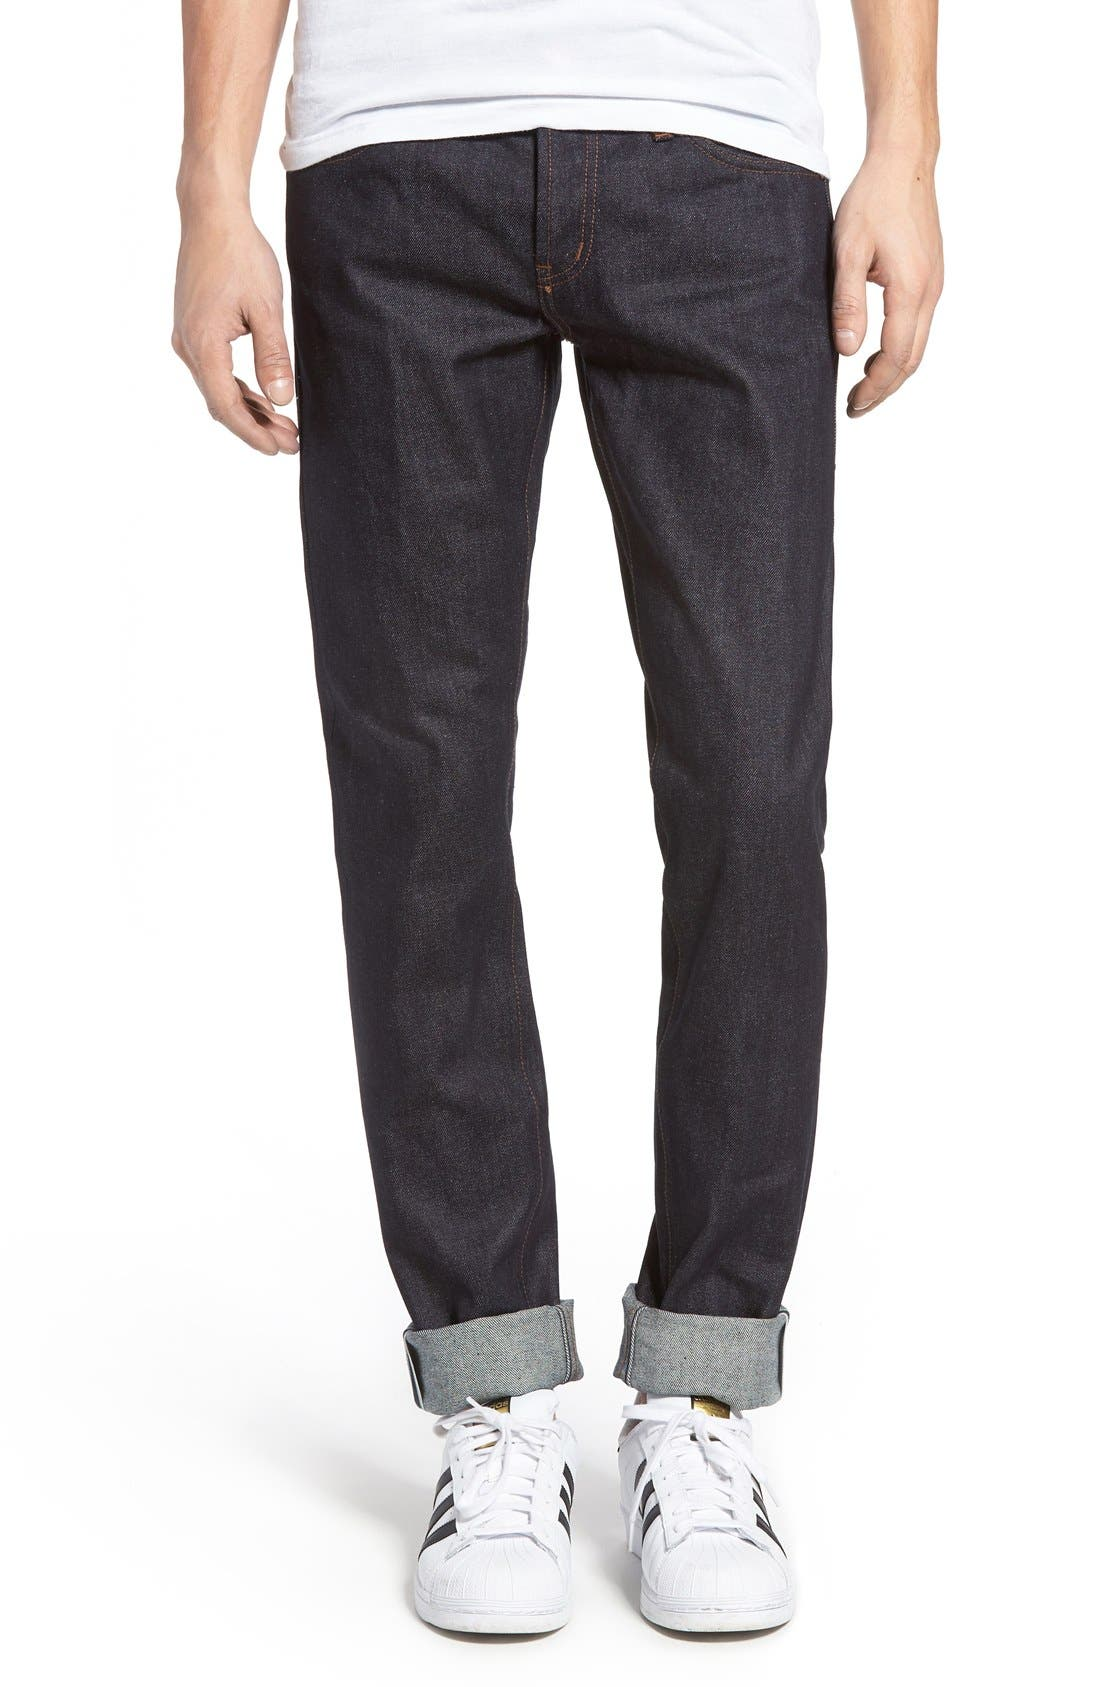 Alternate Image 1 Selected - The Unbranded Brand UB401 Selvedge Skinny Fit Jeans